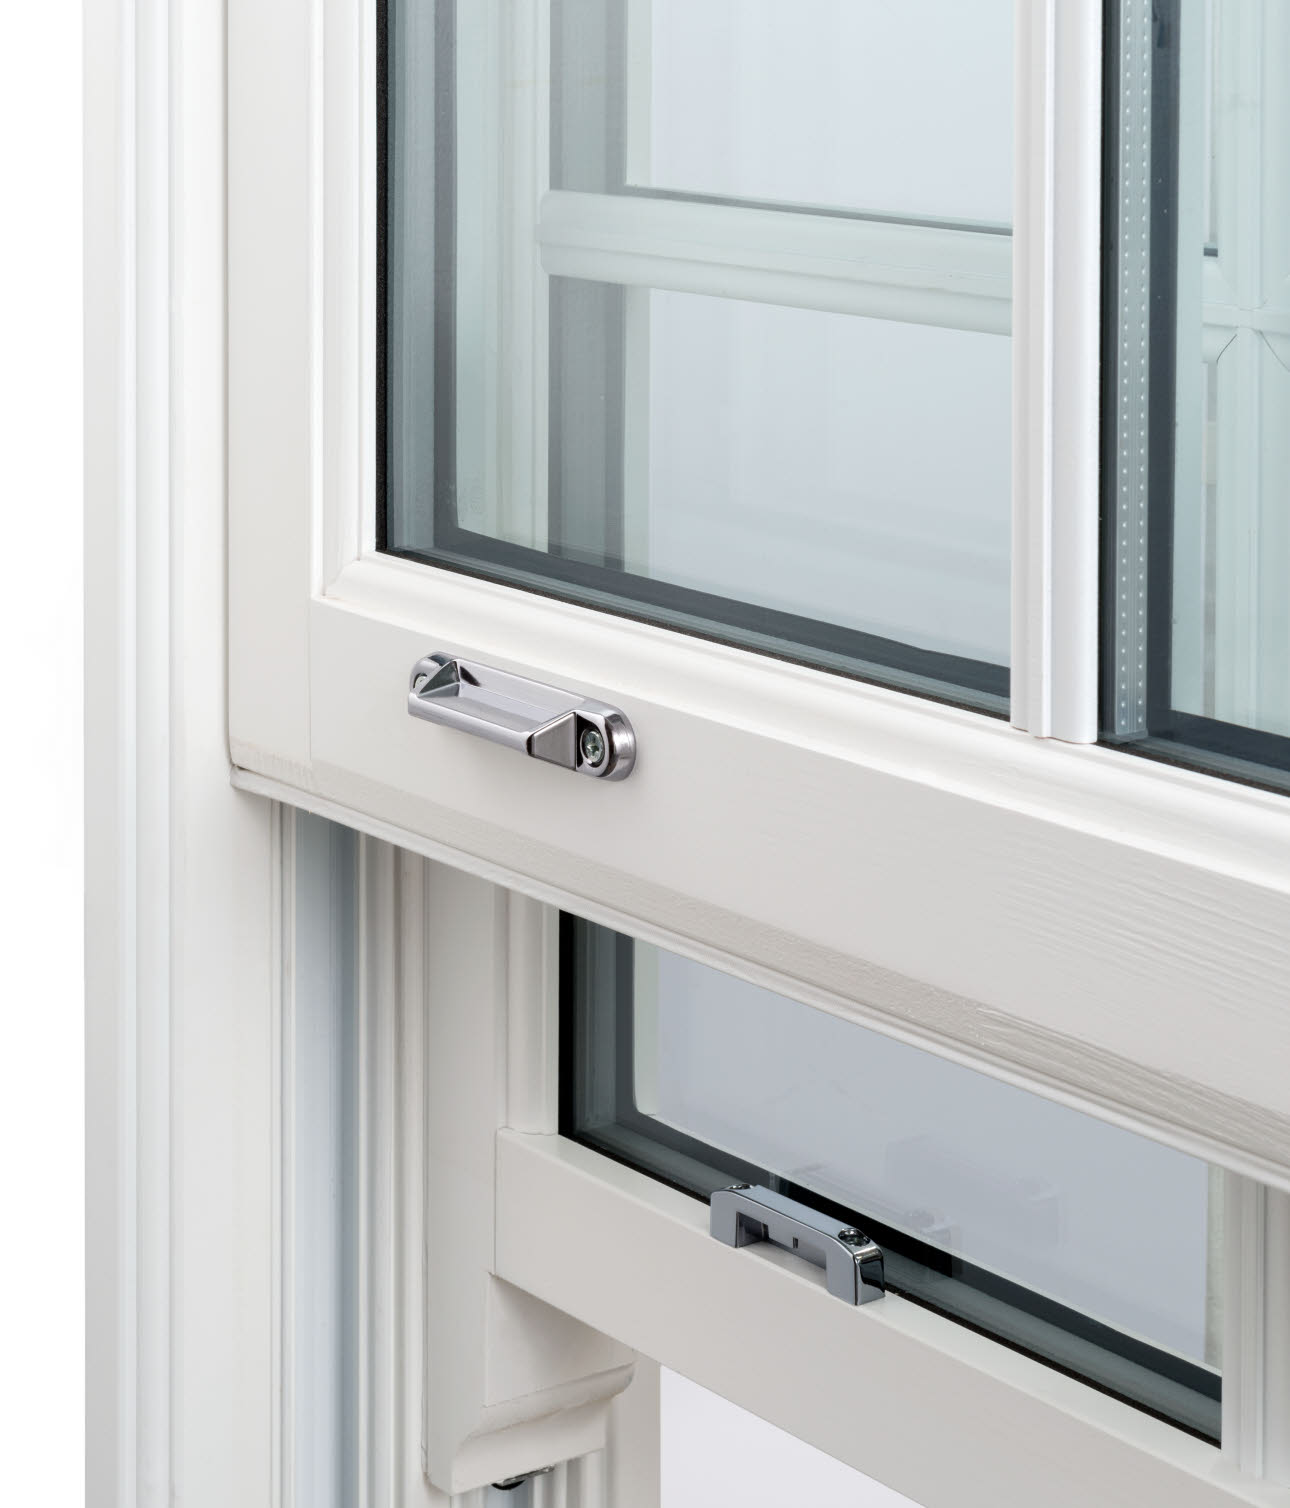 JELD-WEN Sliding Sash Timber Window